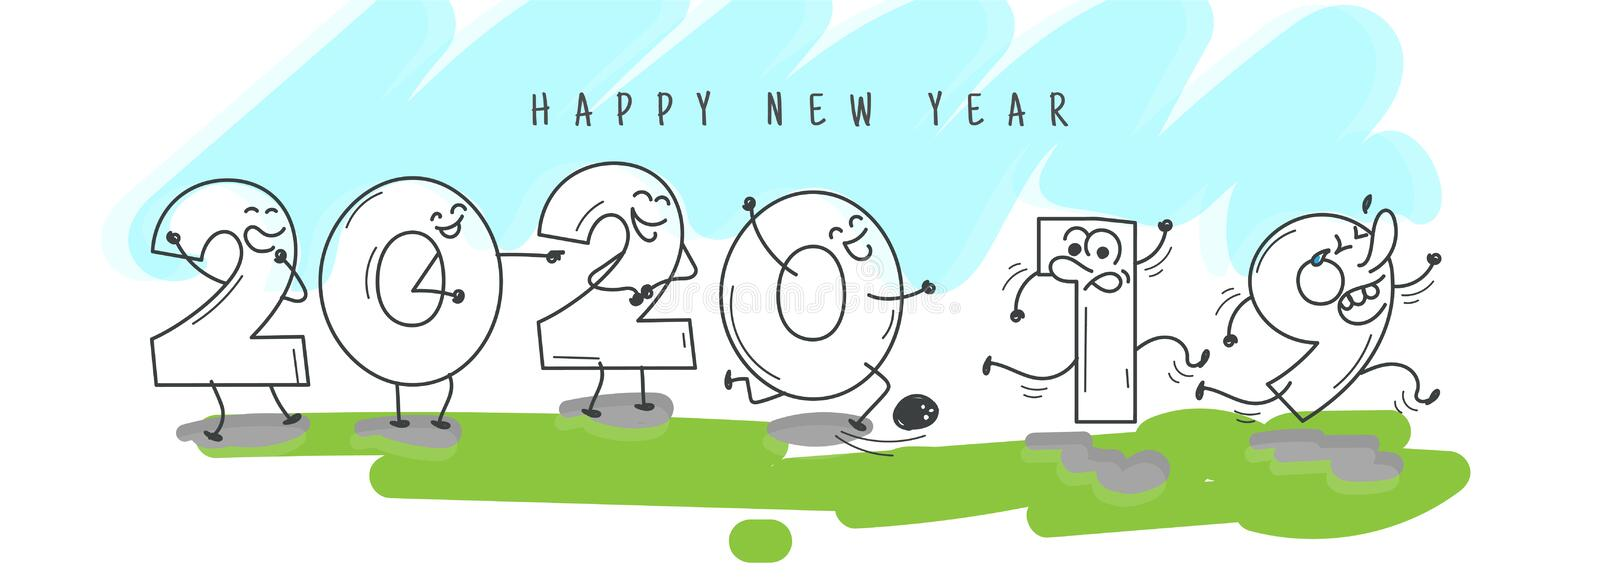 Funny cartoon number of 2020 welcome happy new year and going 2019. royalty free illustration